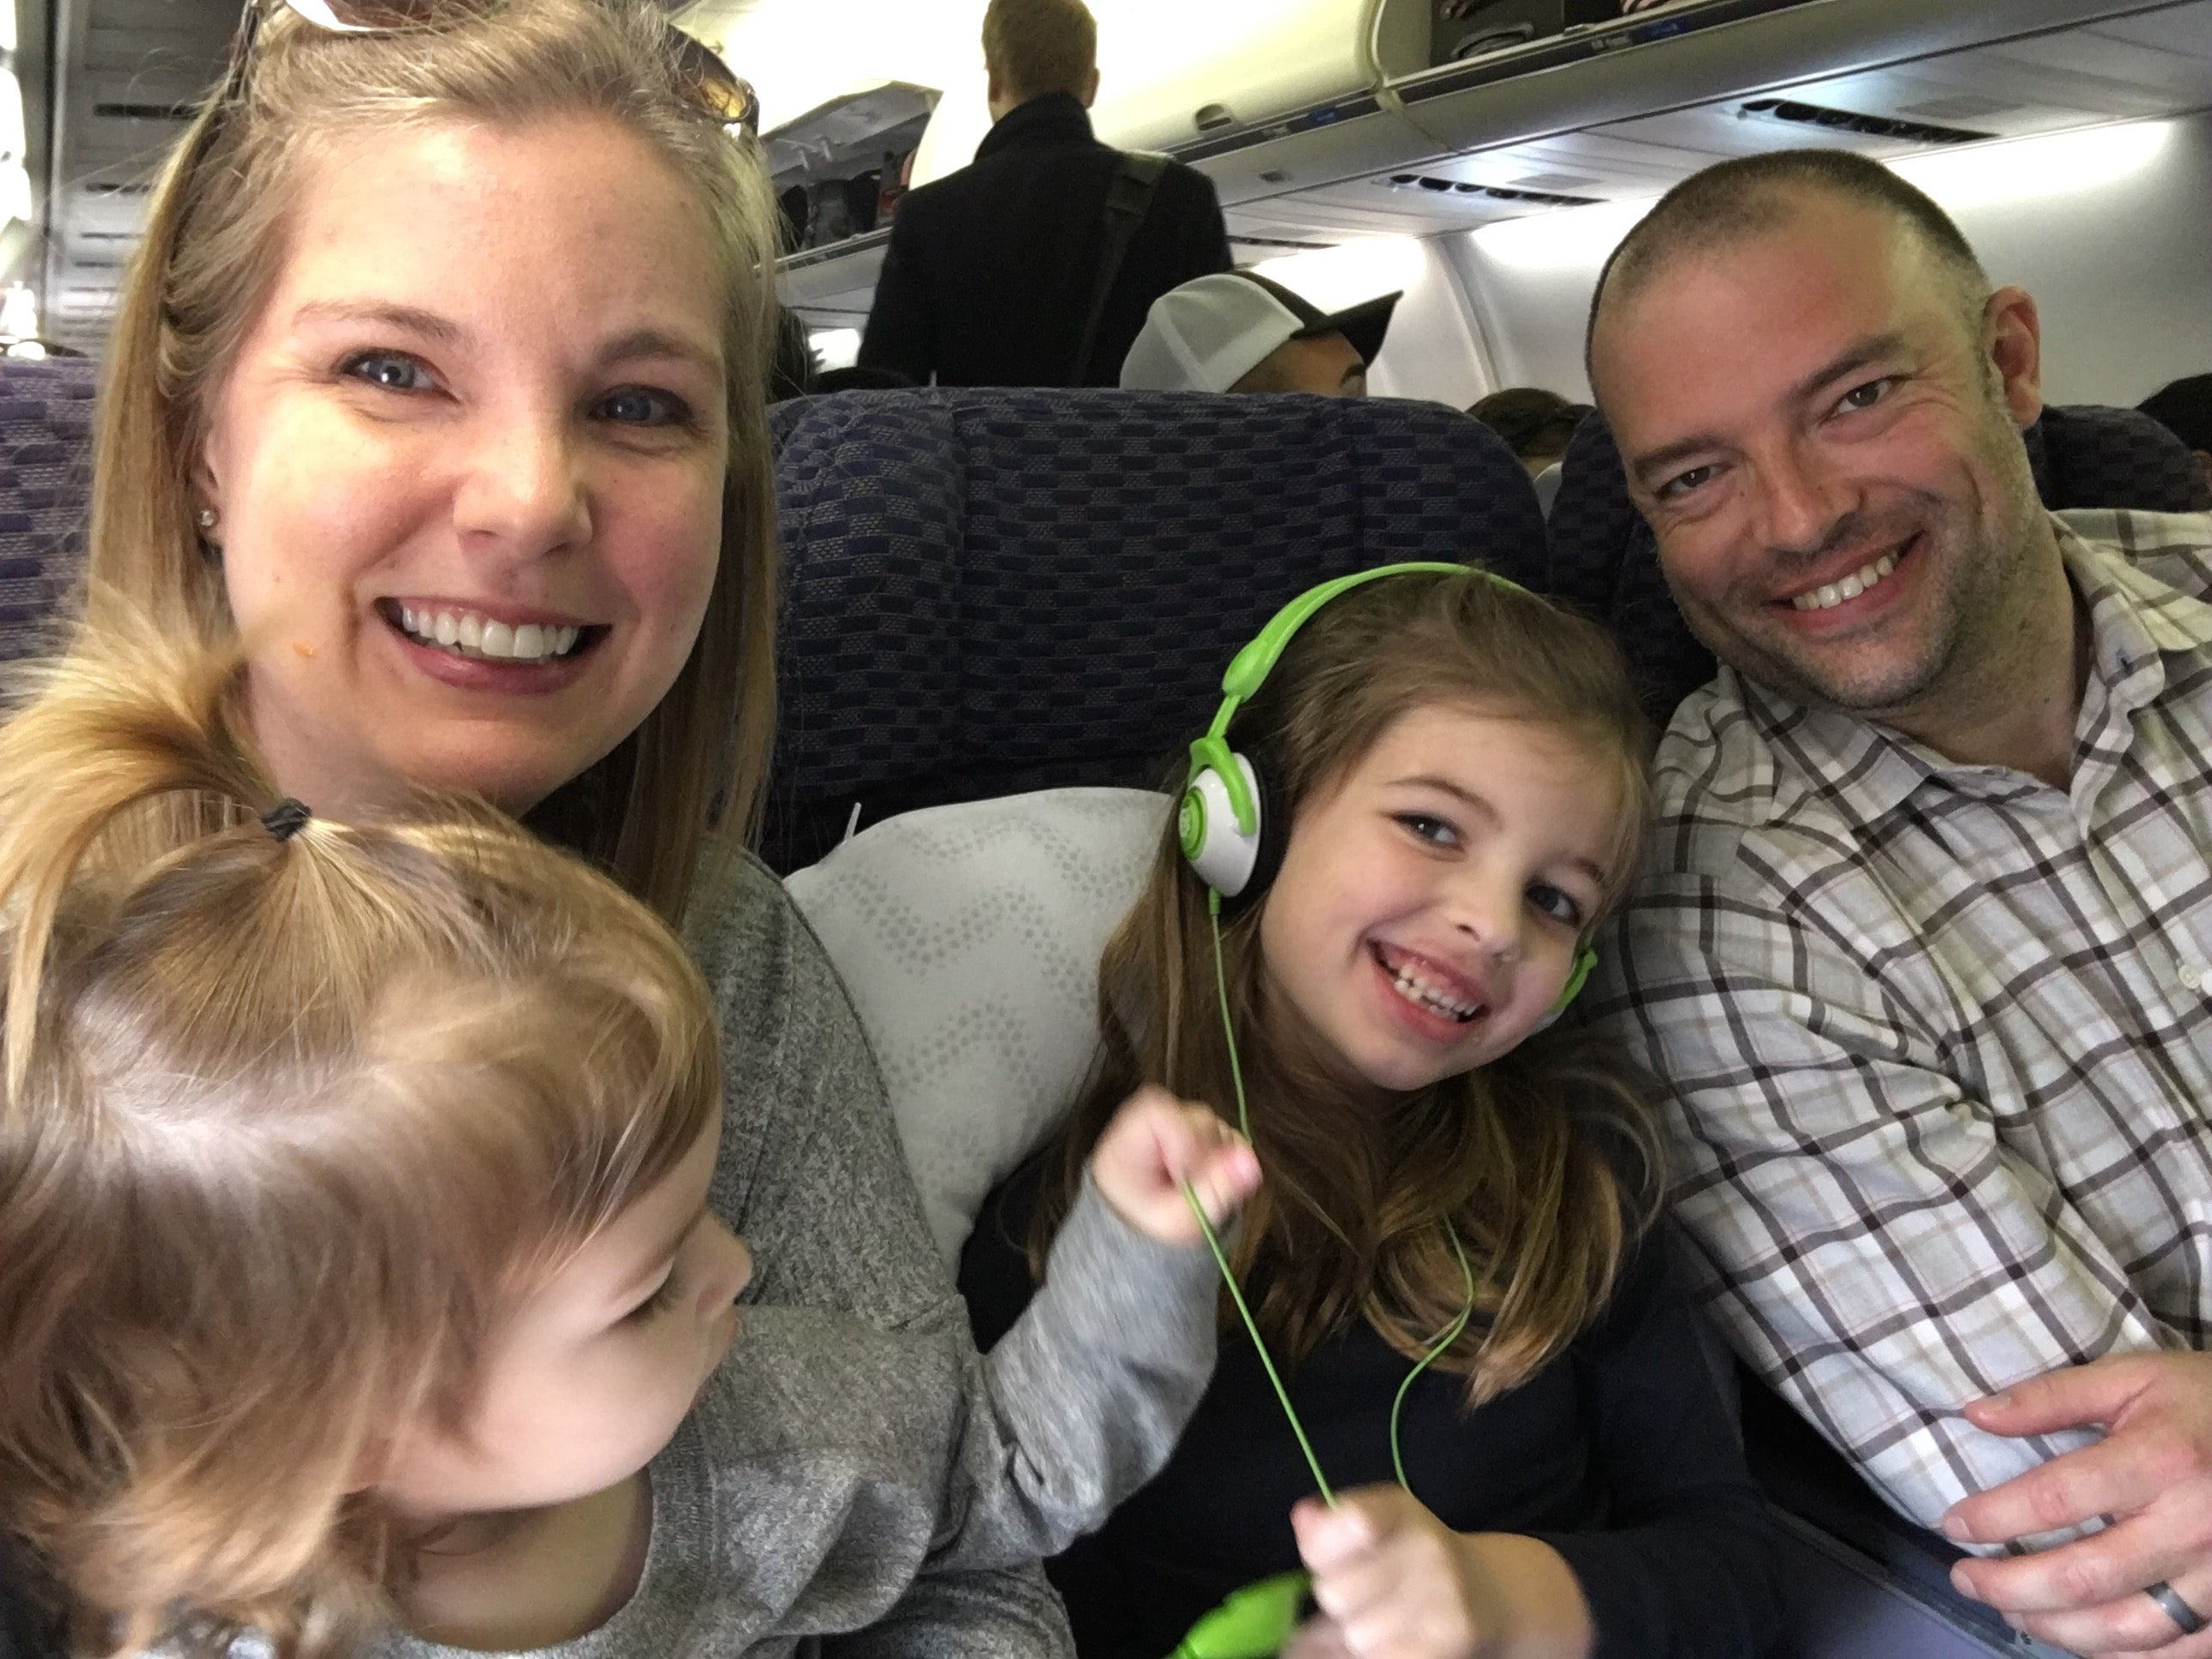 No chilling on the flight with little kids!